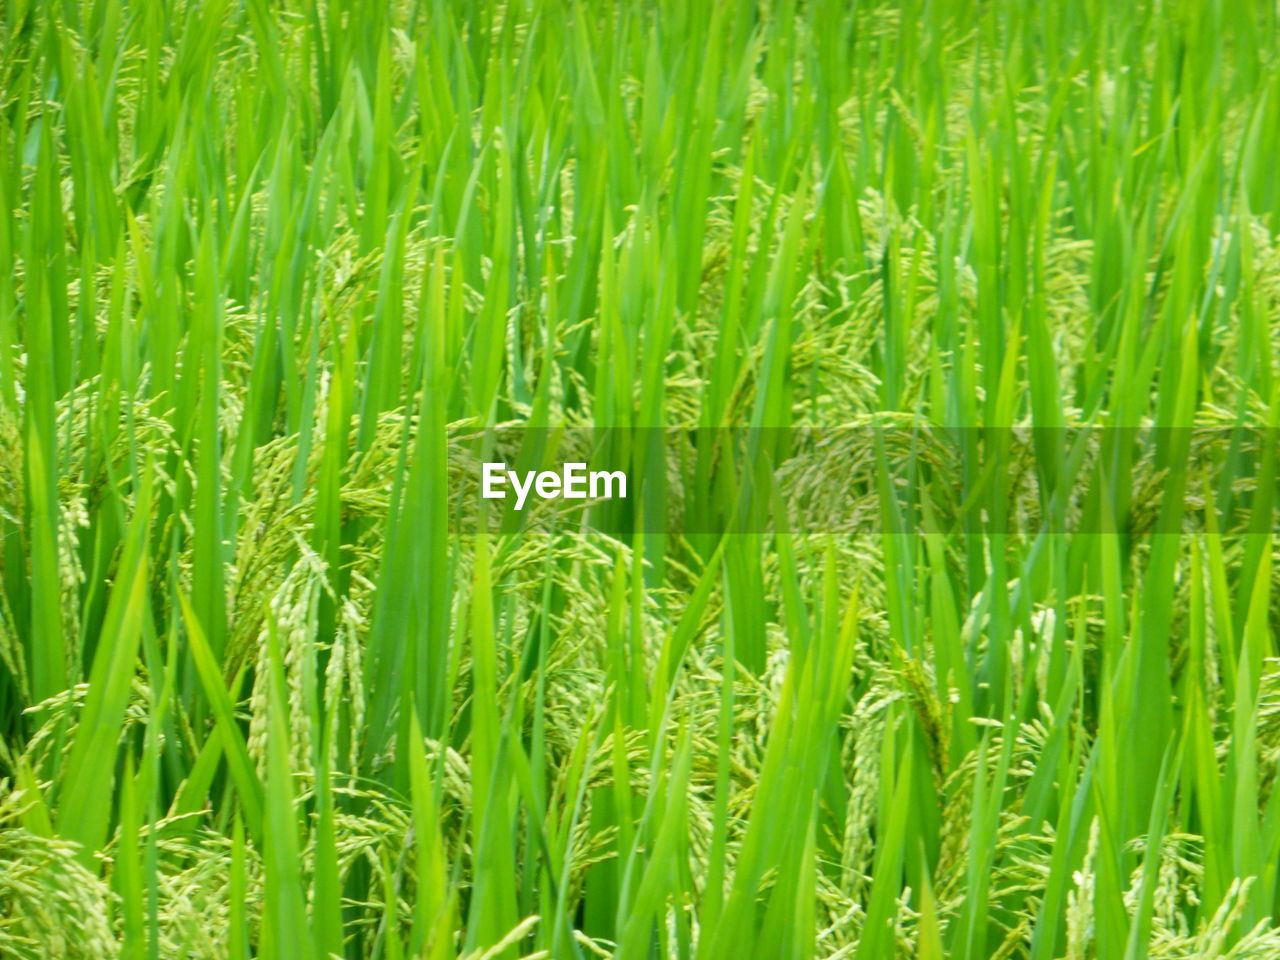 green color, plant, field, agriculture, growth, cereal plant, backgrounds, rural scene, full frame, crop, land, farm, beauty in nature, no people, landscape, nature, day, close-up, rice - cereal plant, freshness, outdoors, plantation, blade of grass